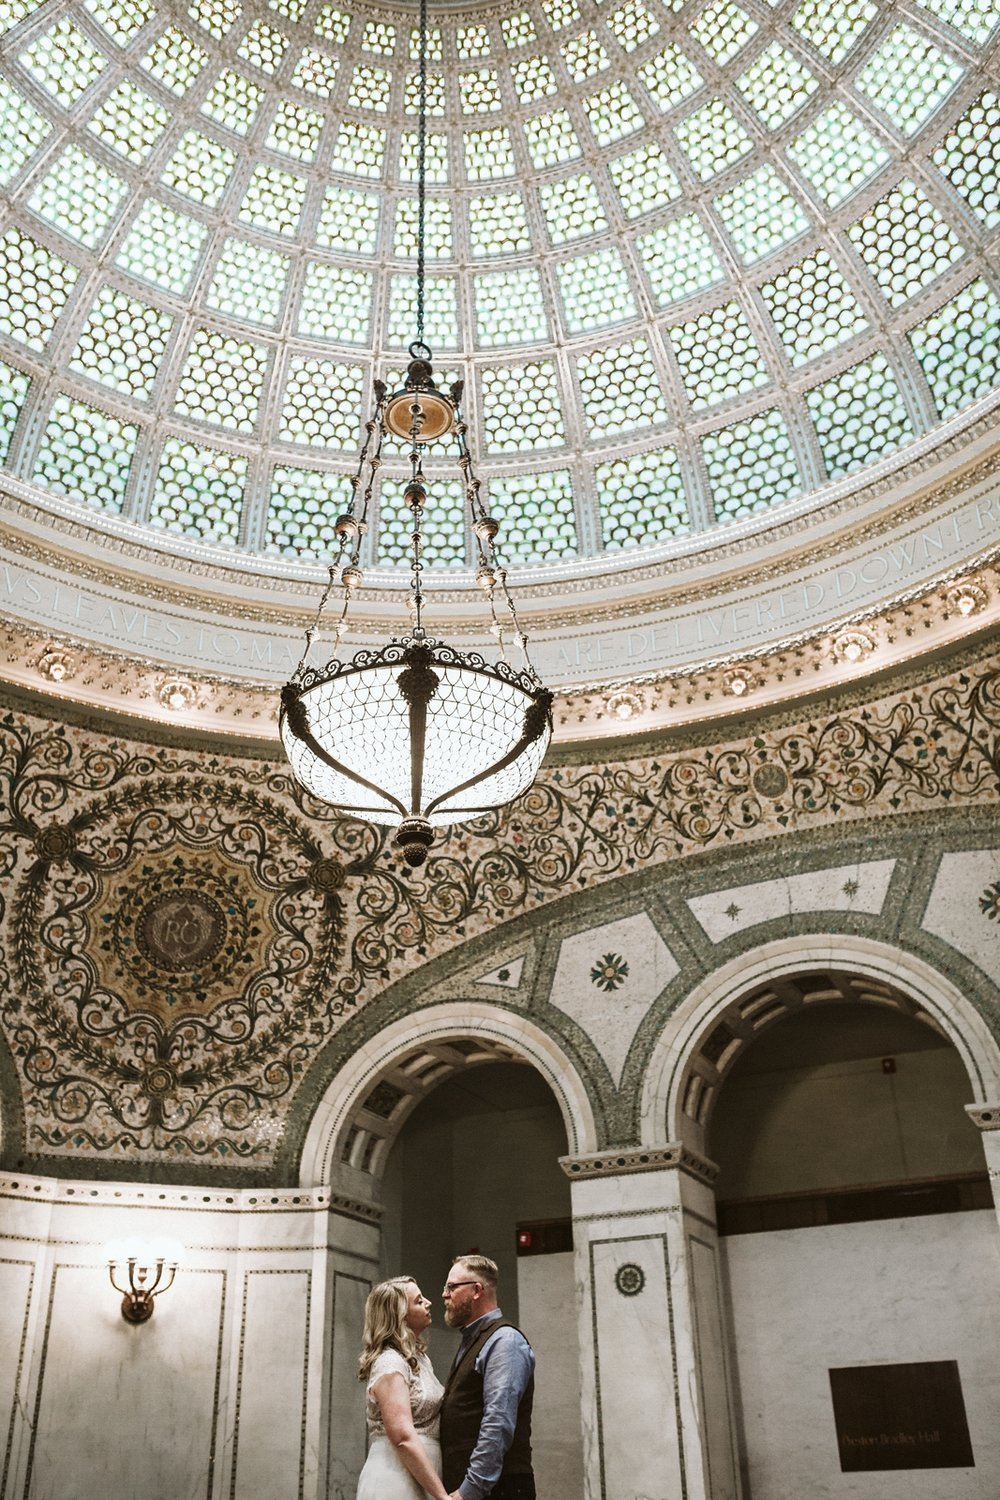 Chicago Cultural Center Wedding.Blog Chi Thee Wed